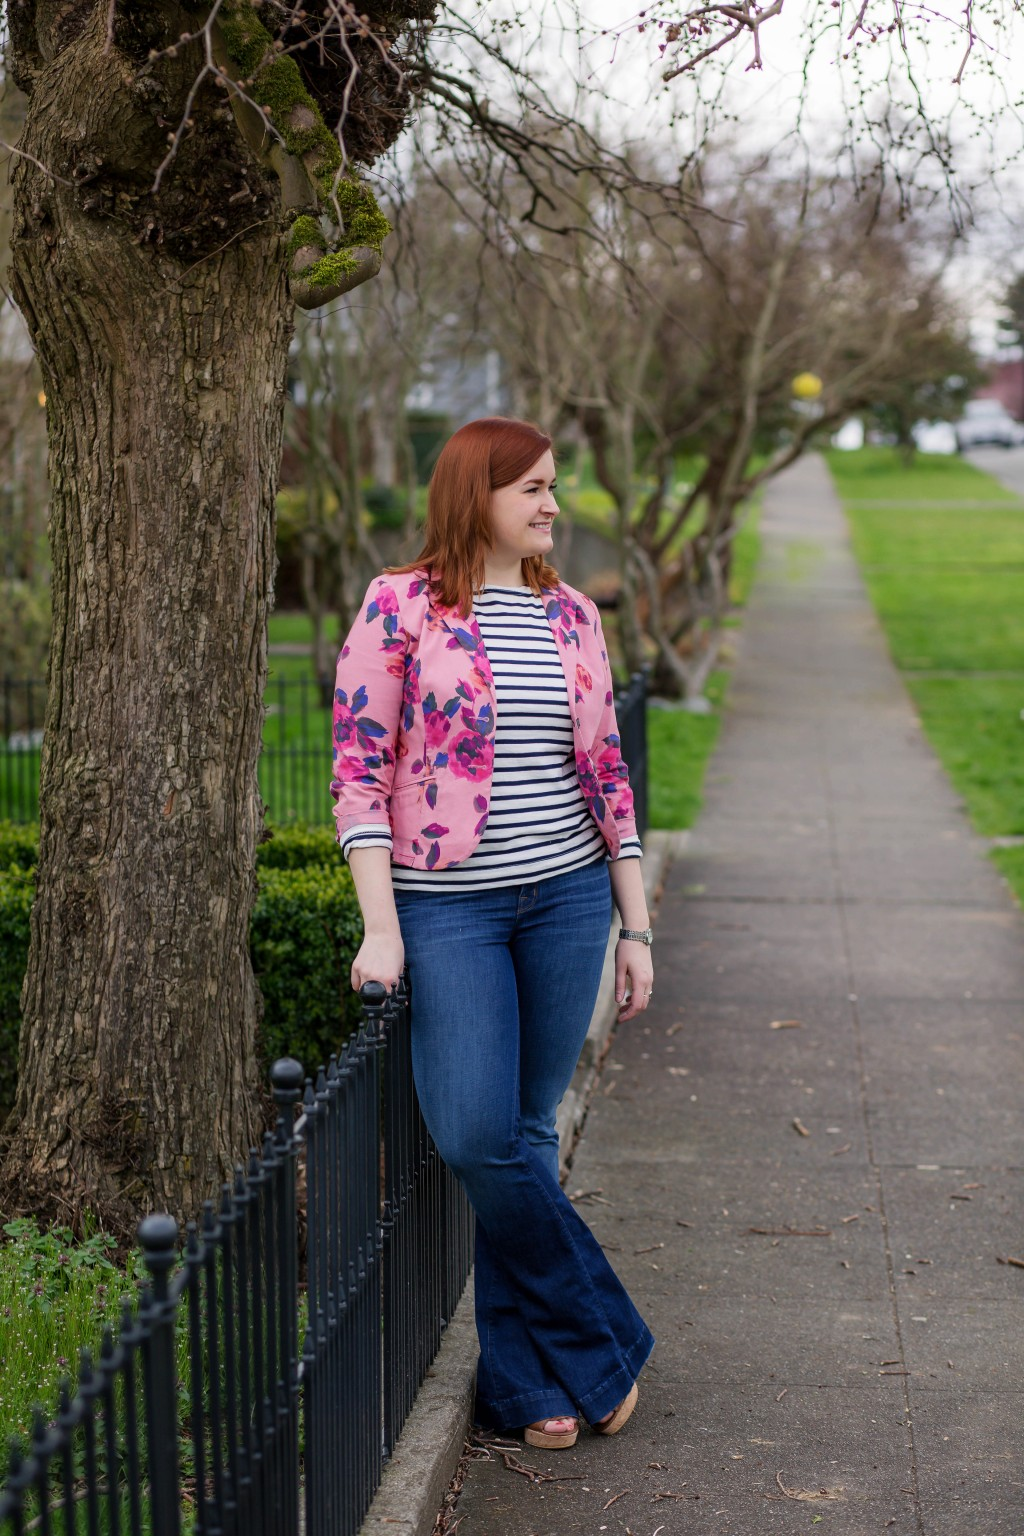 Styling flares for spring with floral and stripes